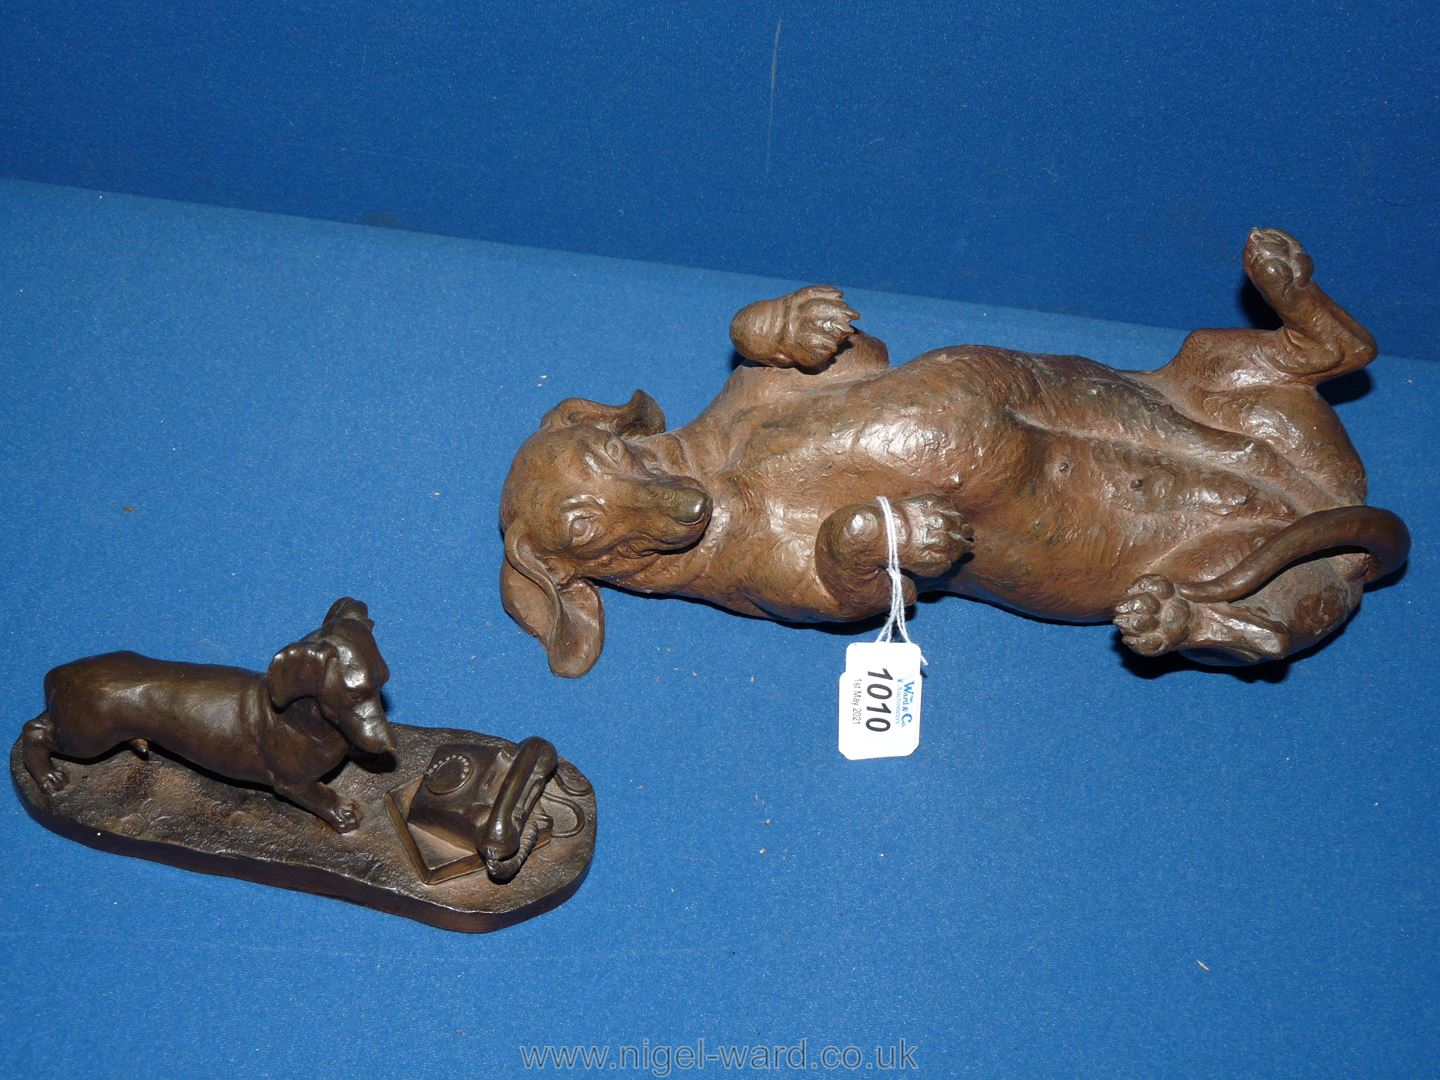 A heavy cast composite sculpture in a bronze patina of a rolling Dachshund,